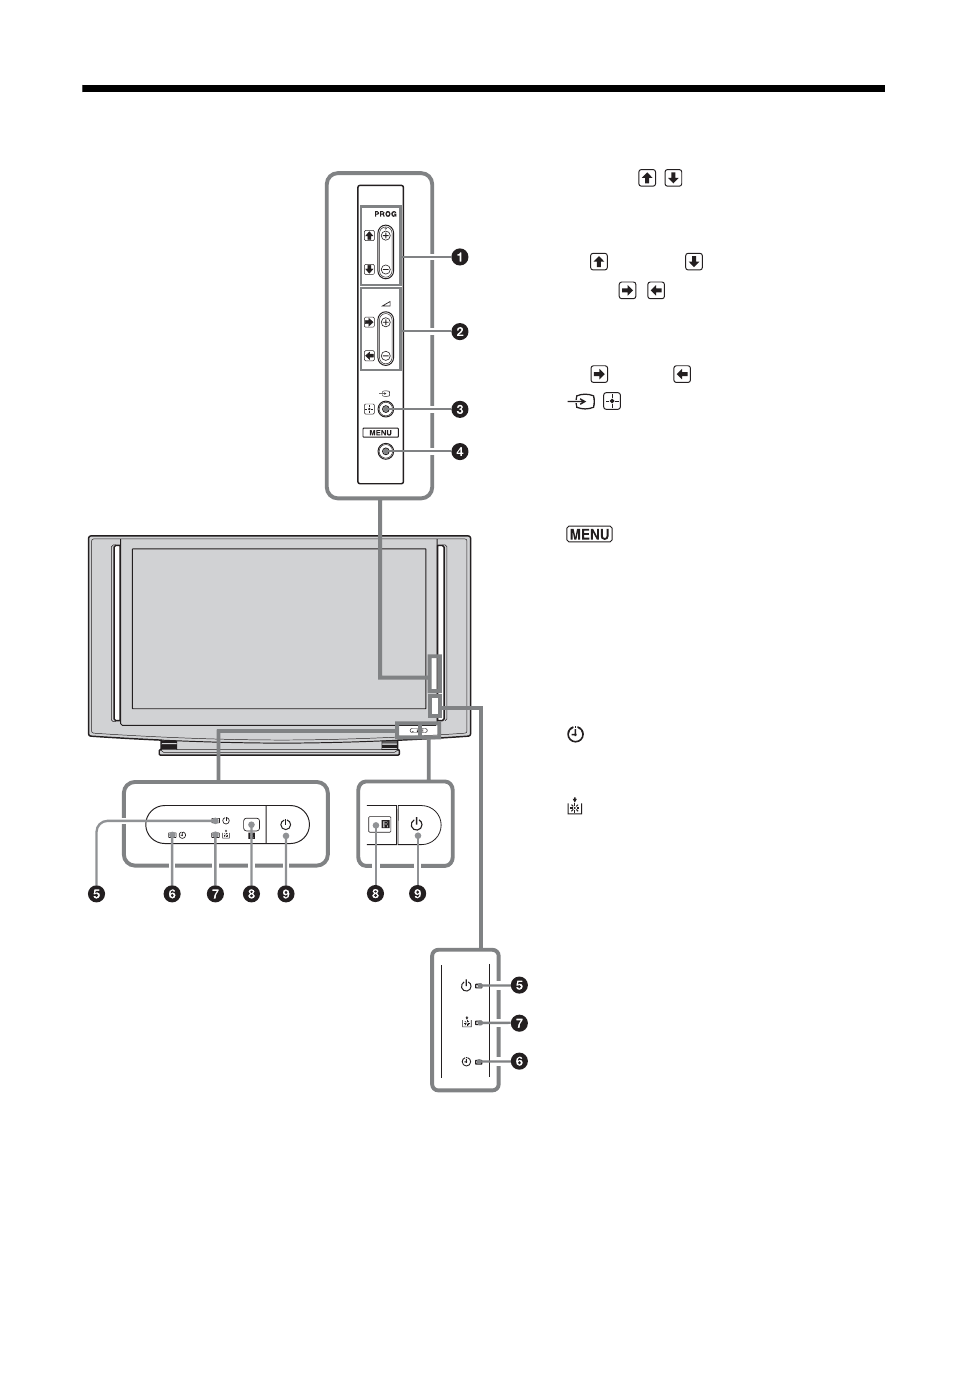 Sony BRAVIA KS-70R200A User's Manual | Page 14 - Free PDF